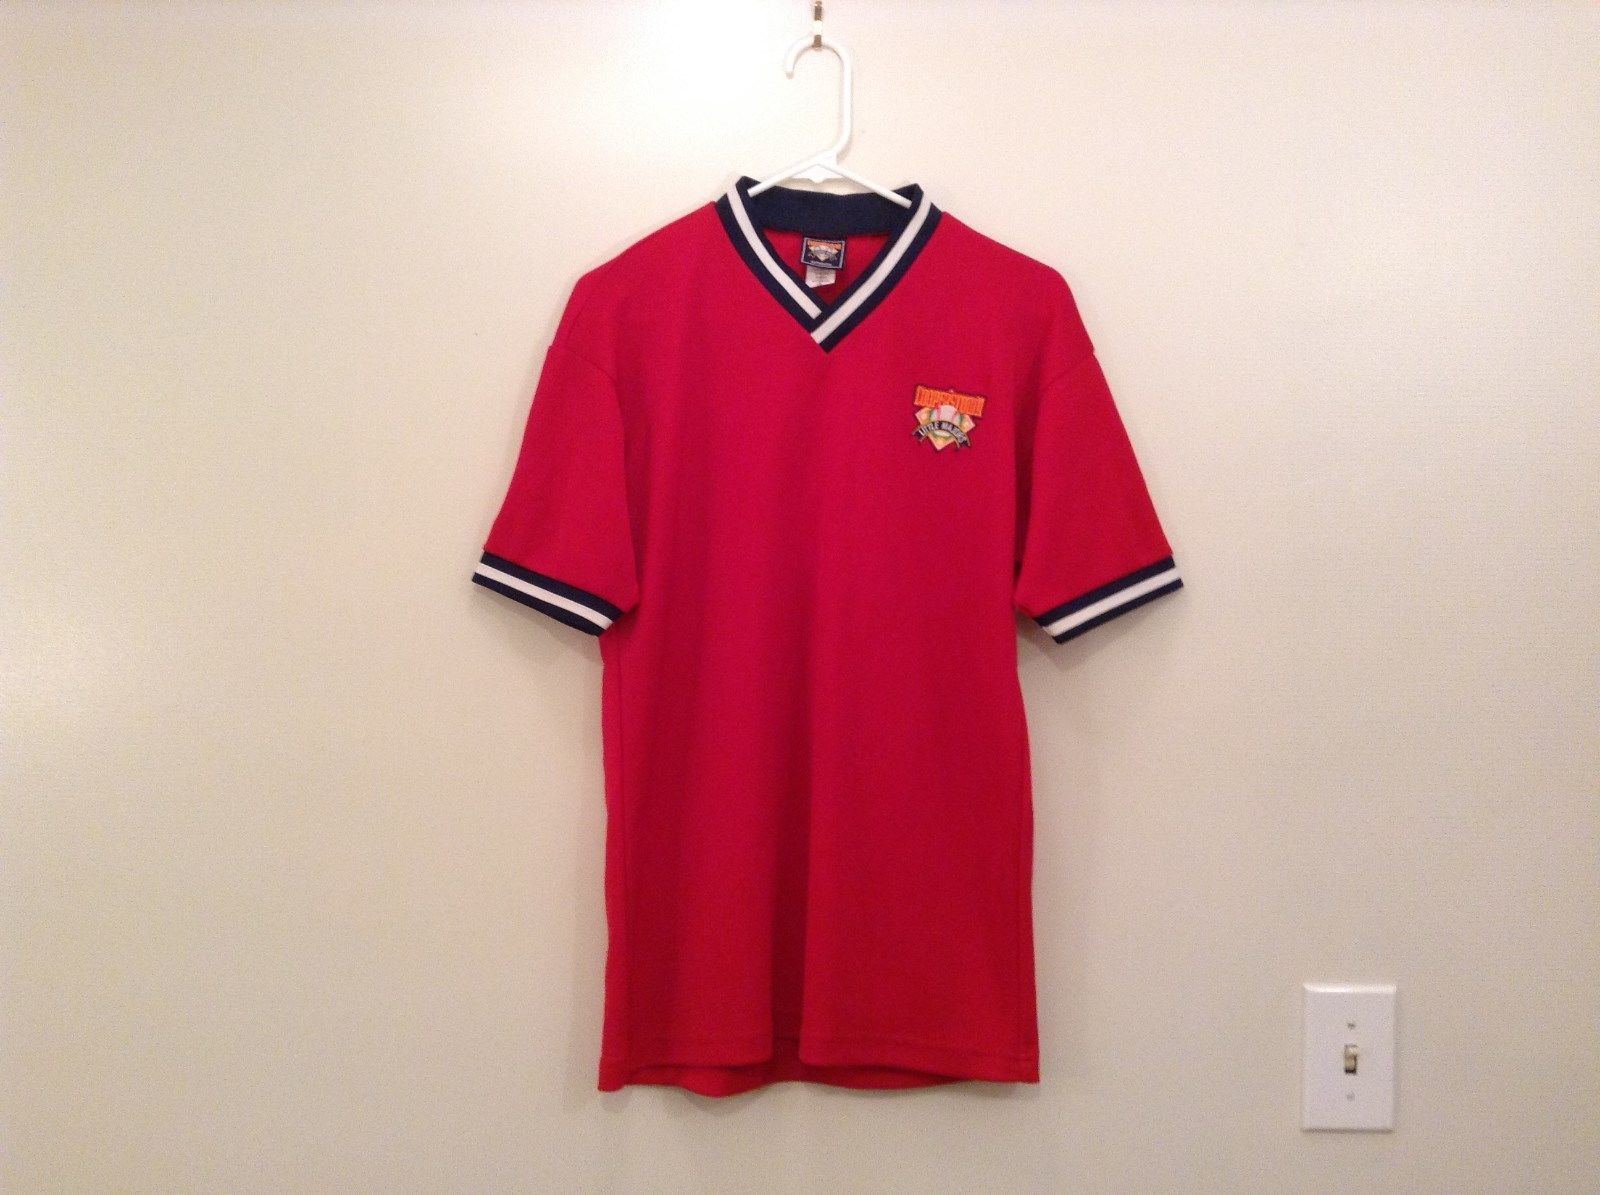 Team Cooperstown Little Majors Bright Red Team Embroidery V Neck Shirt Size M